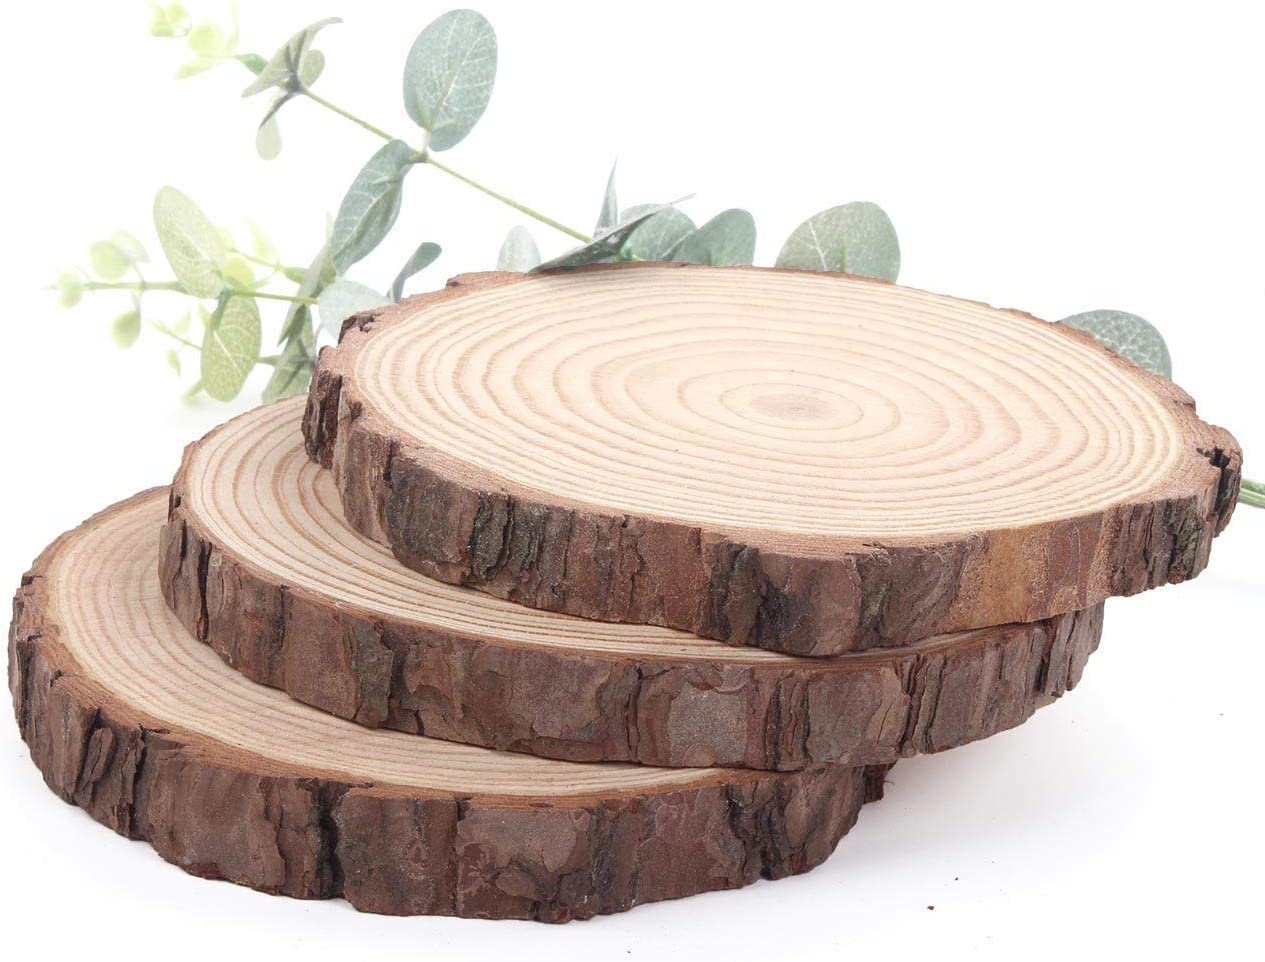 "Natural Pine Wood Slabs Untreated 6-7 inches Diameter x 3/5"" Thick Large 3 Pieces Solid Wood Slices for Weddings, Table Centerpieces, DIY Projects or Decoration"